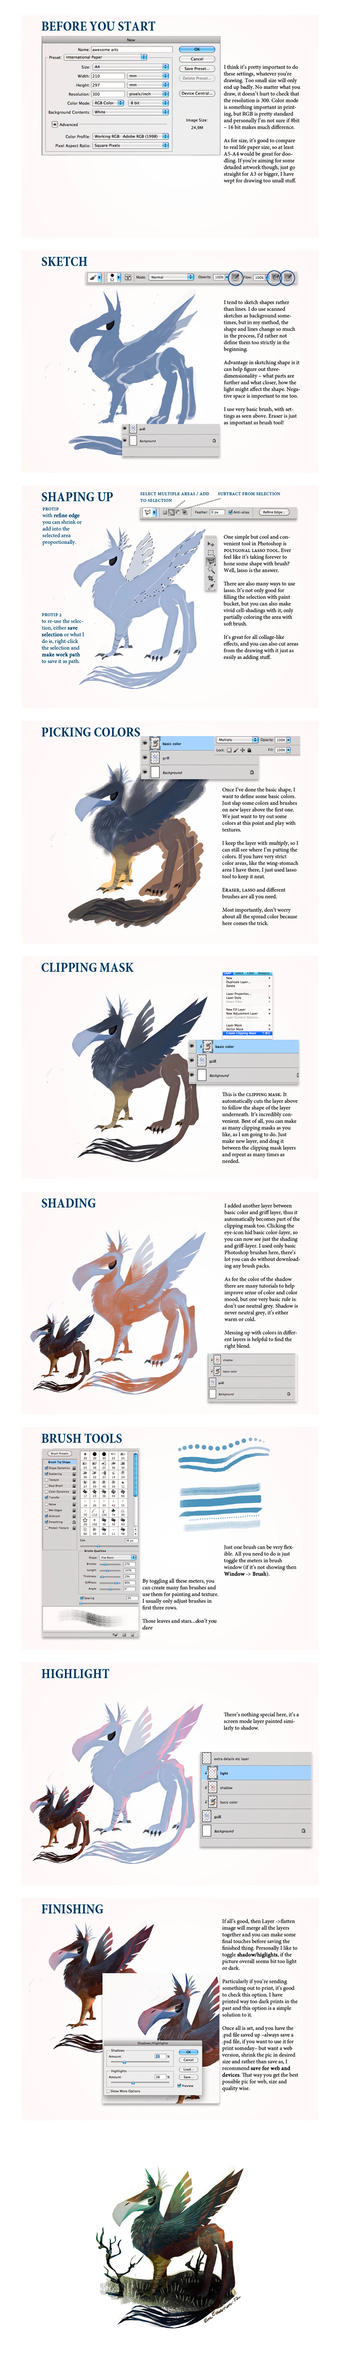 Clipping mask tutorial by evelmiina